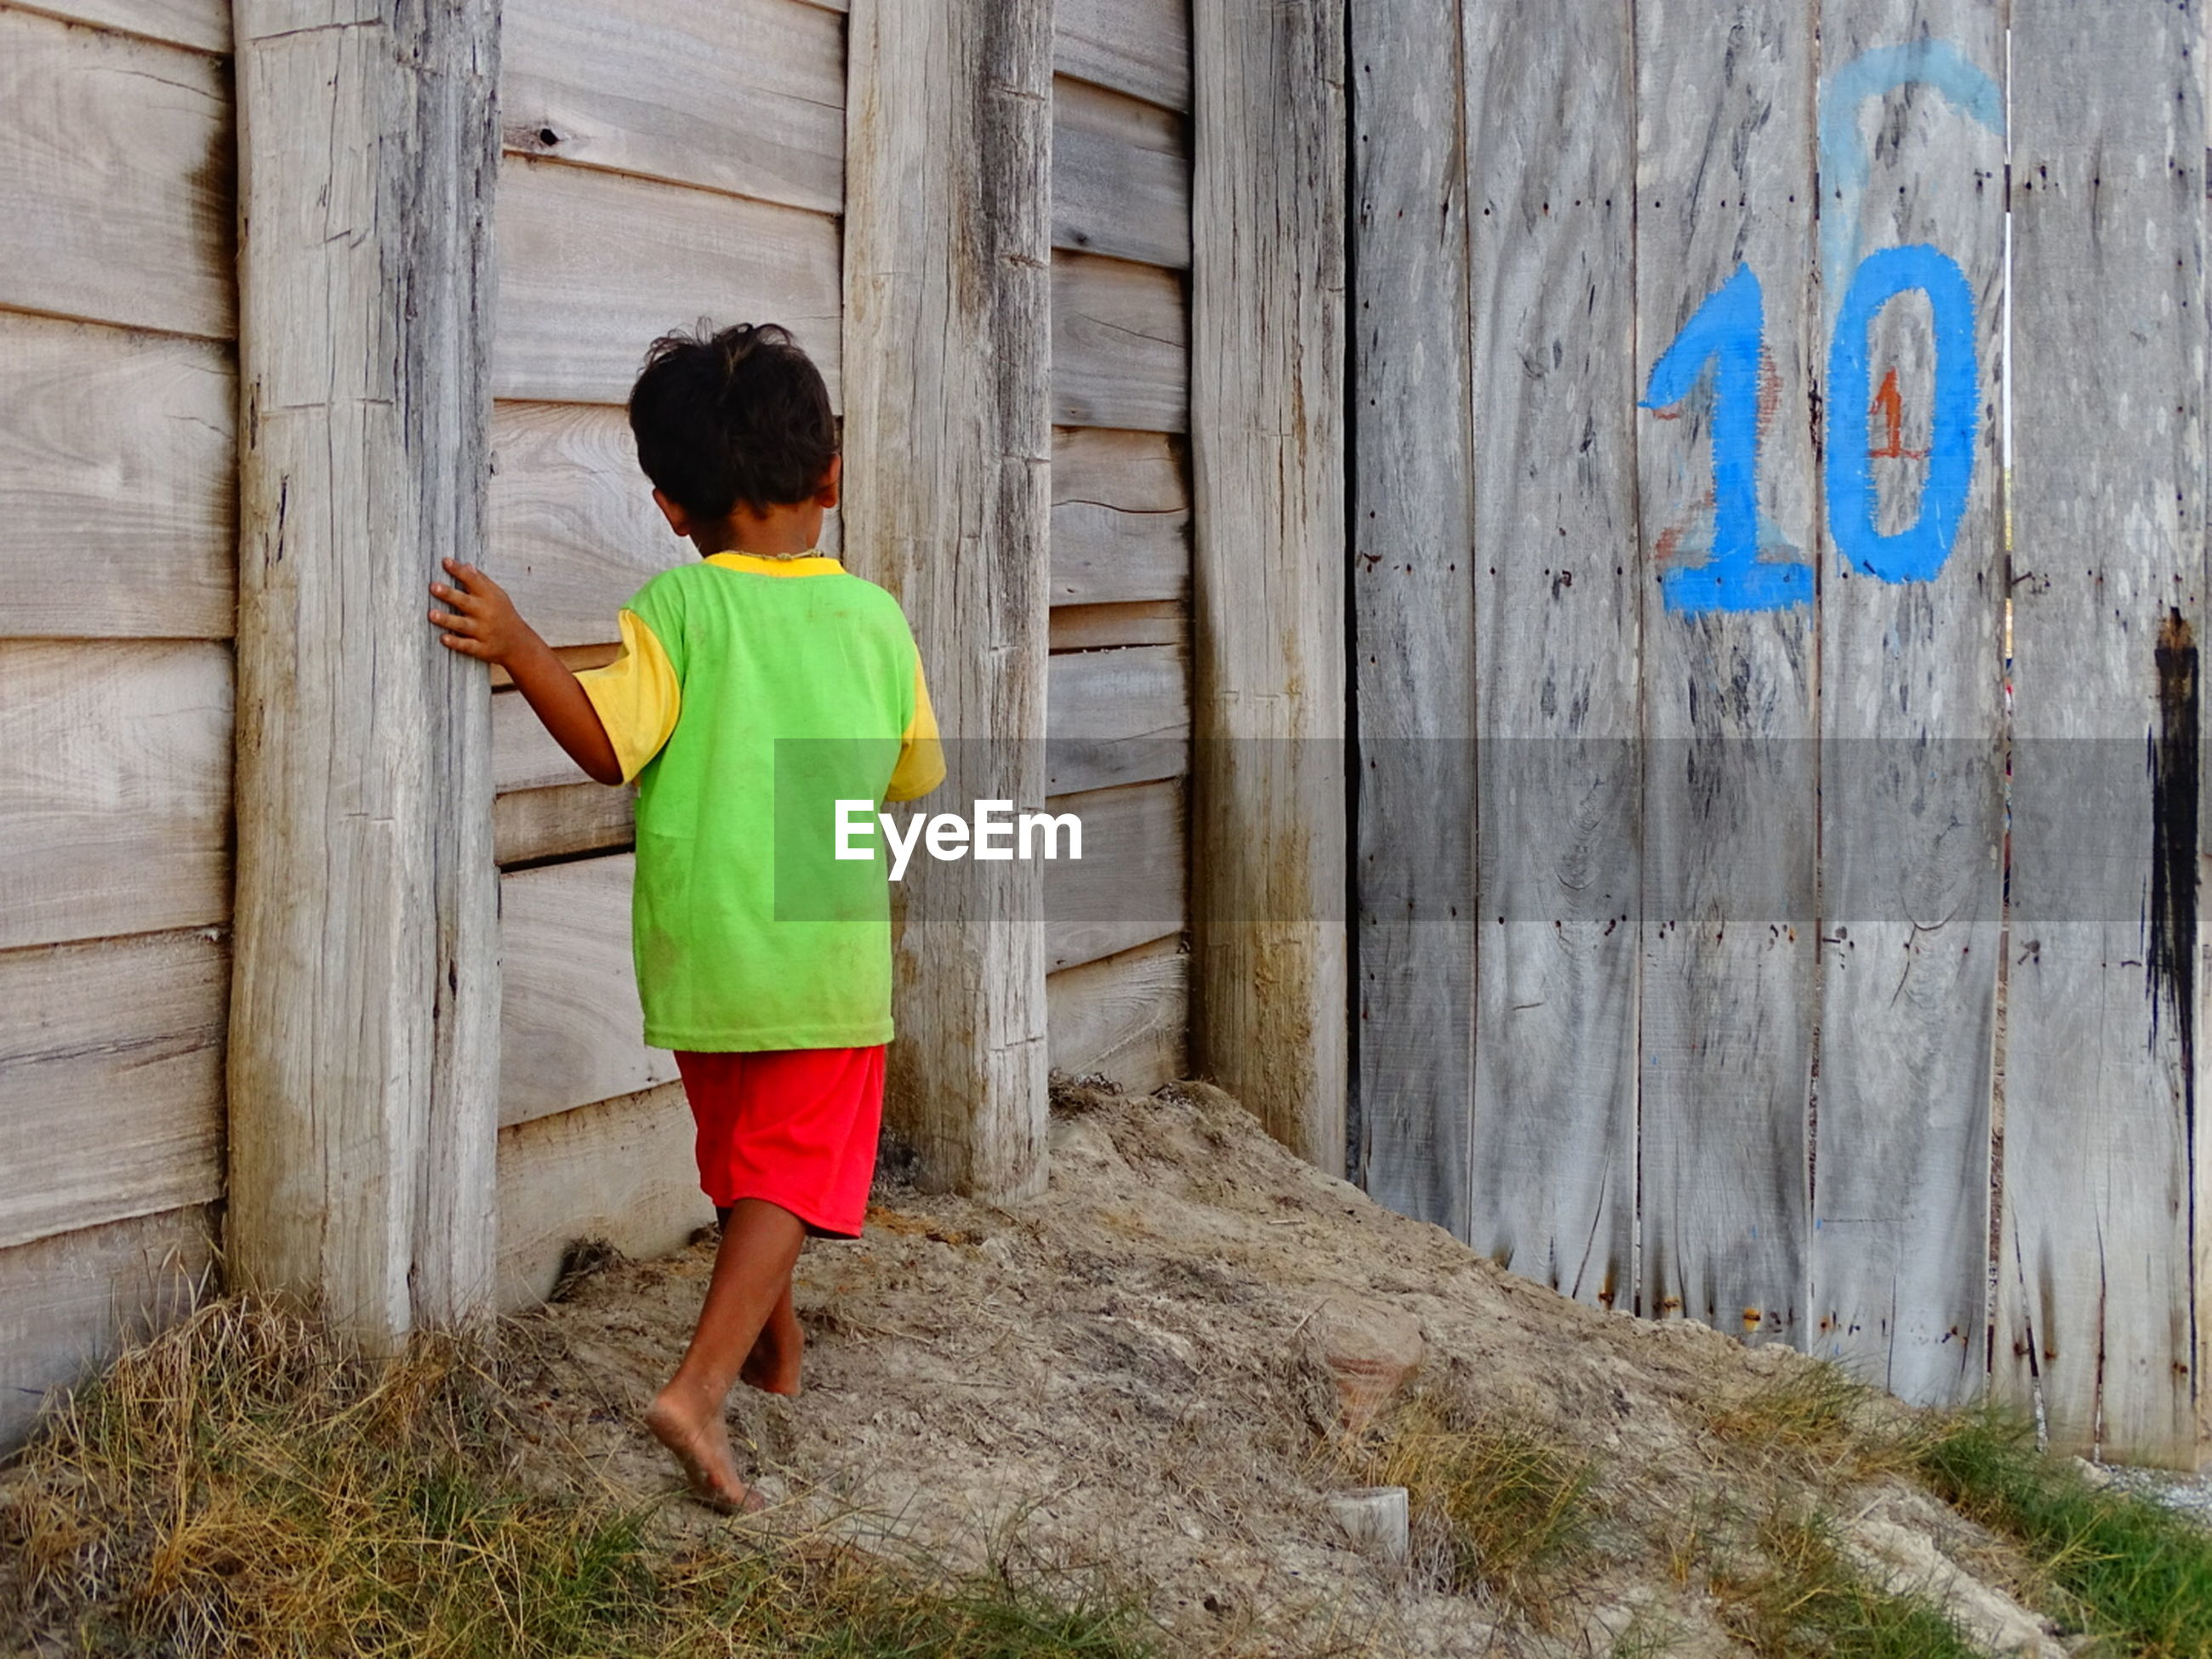 Rear view of child walking by wooden walls